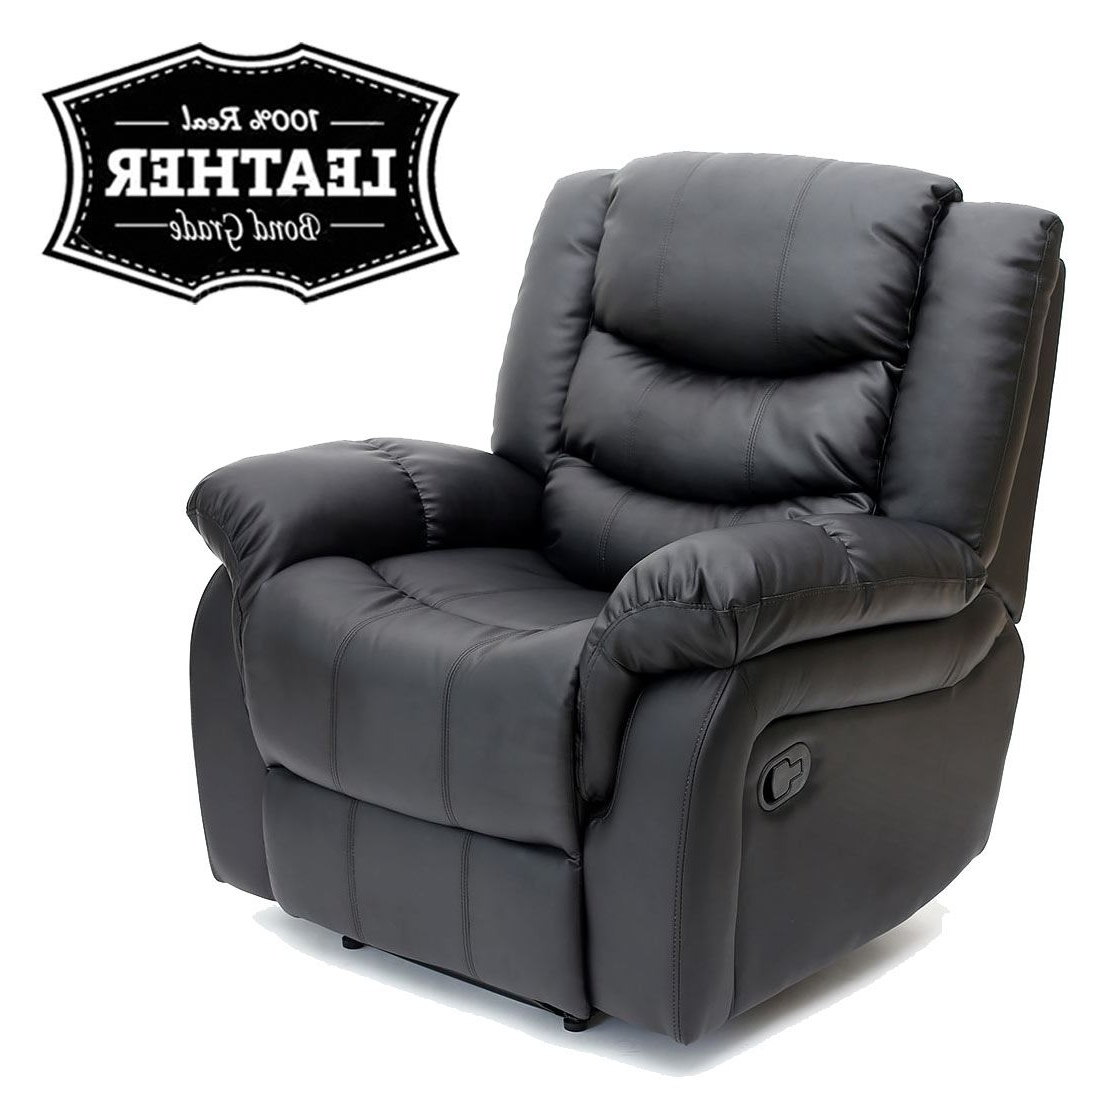 Gaming Sofa Chairs Pertaining To Popular Seattle Leather Recliner Armchair Sofa Home Lounge Chair Reclining (View 2 of 15)